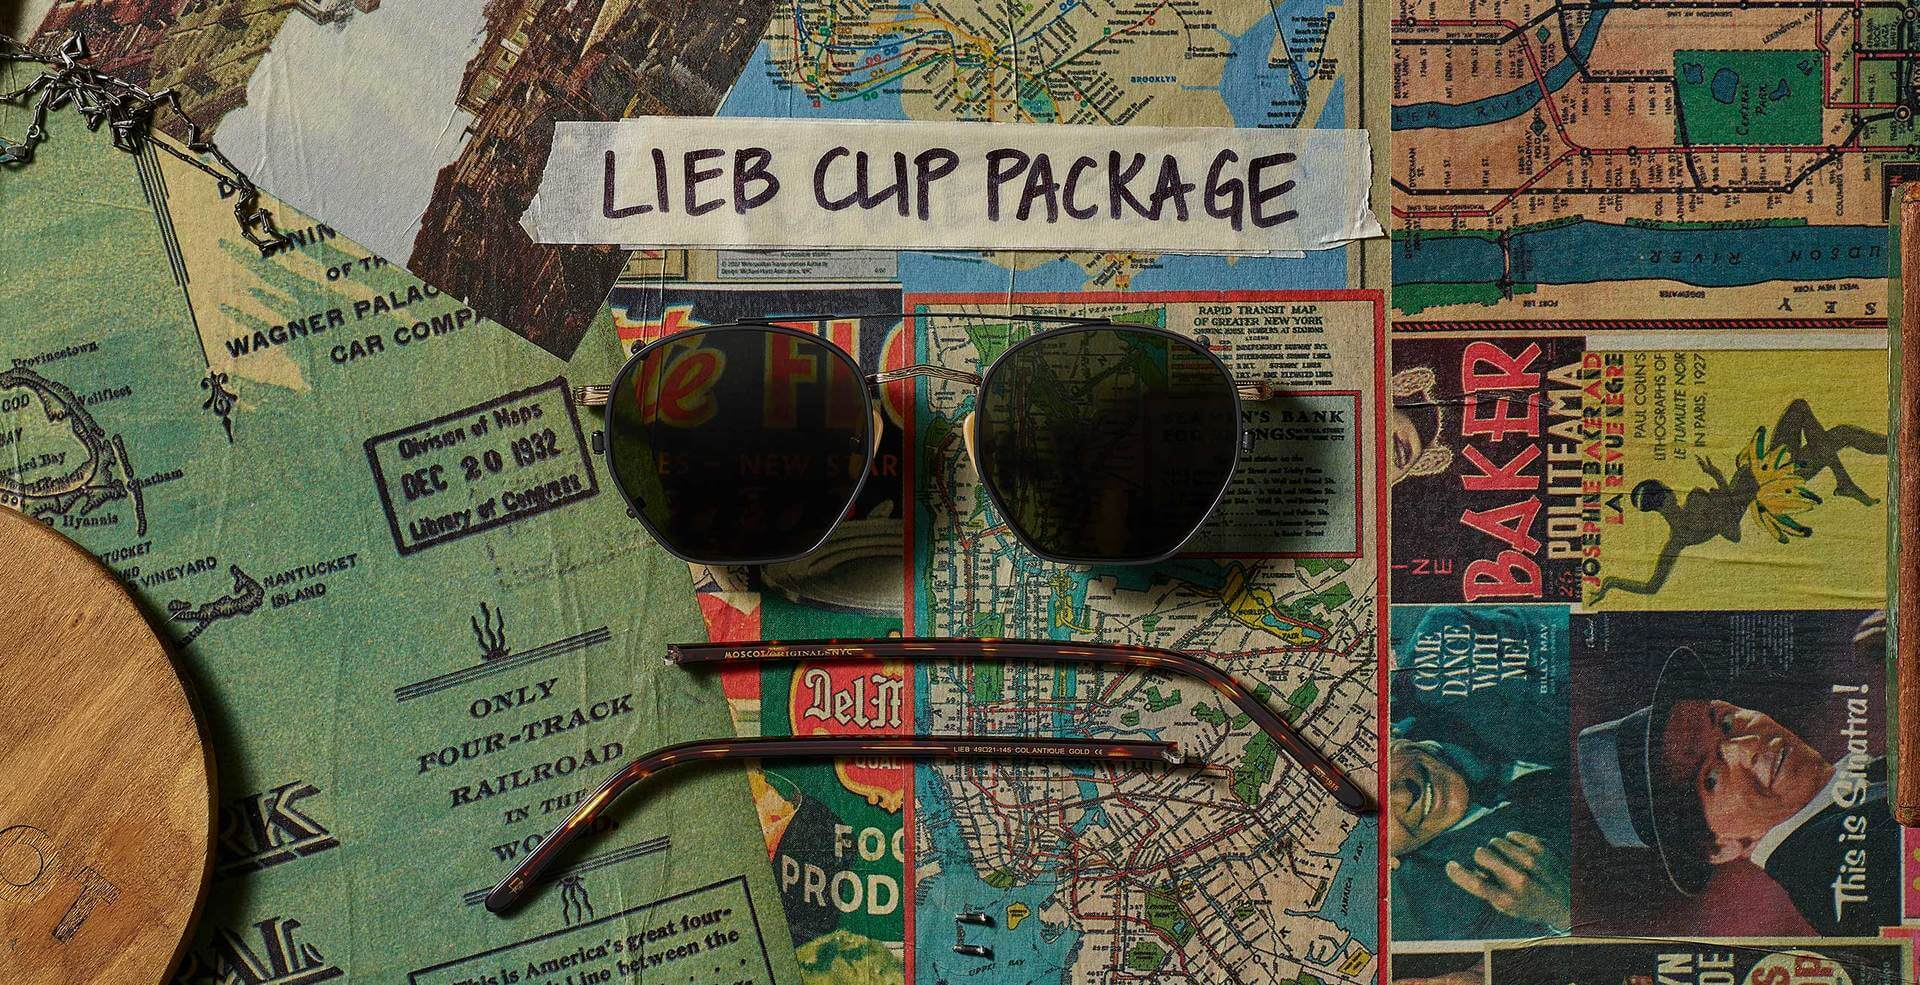 LIEB CLIP PACKAGE